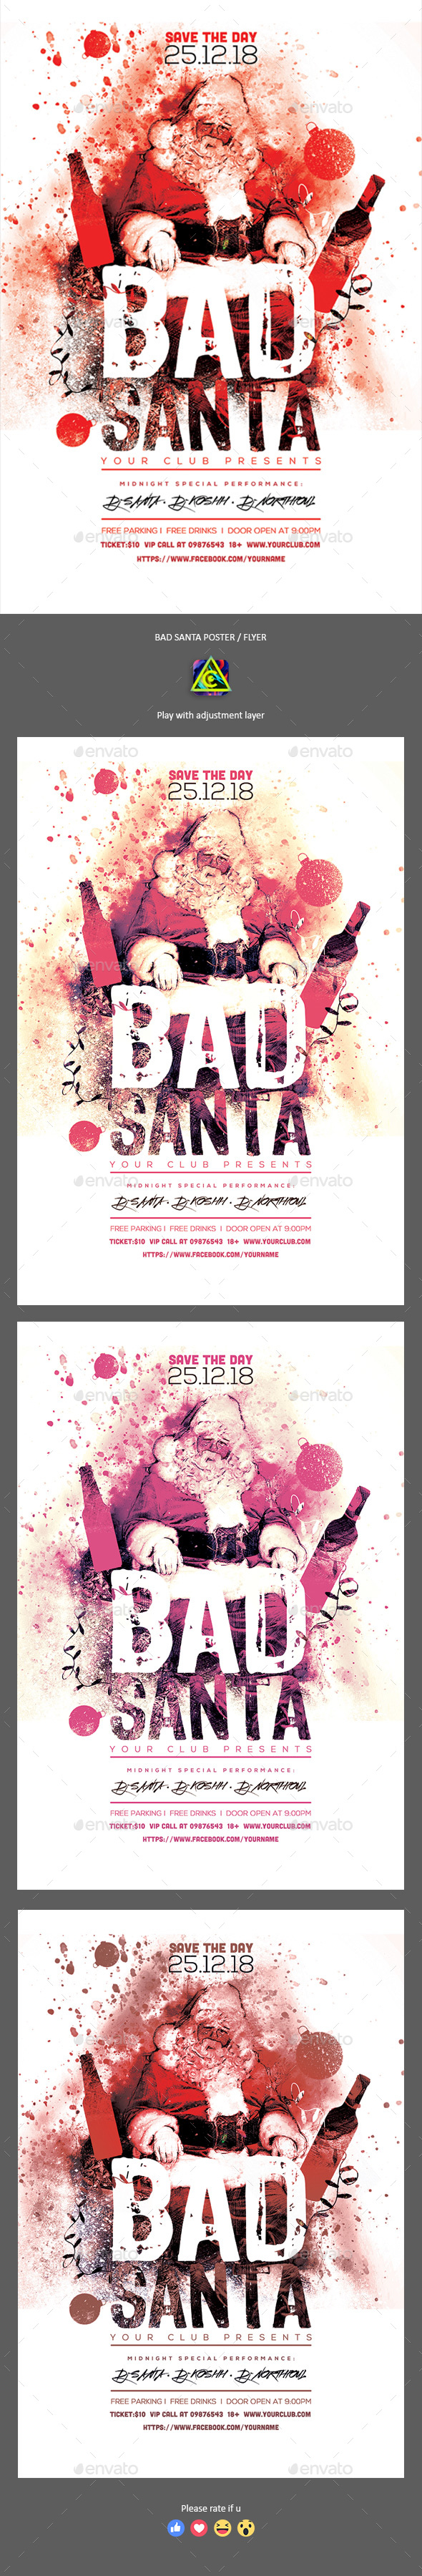 Bad Santa Poster / Flyer - Clubs & Parties Events